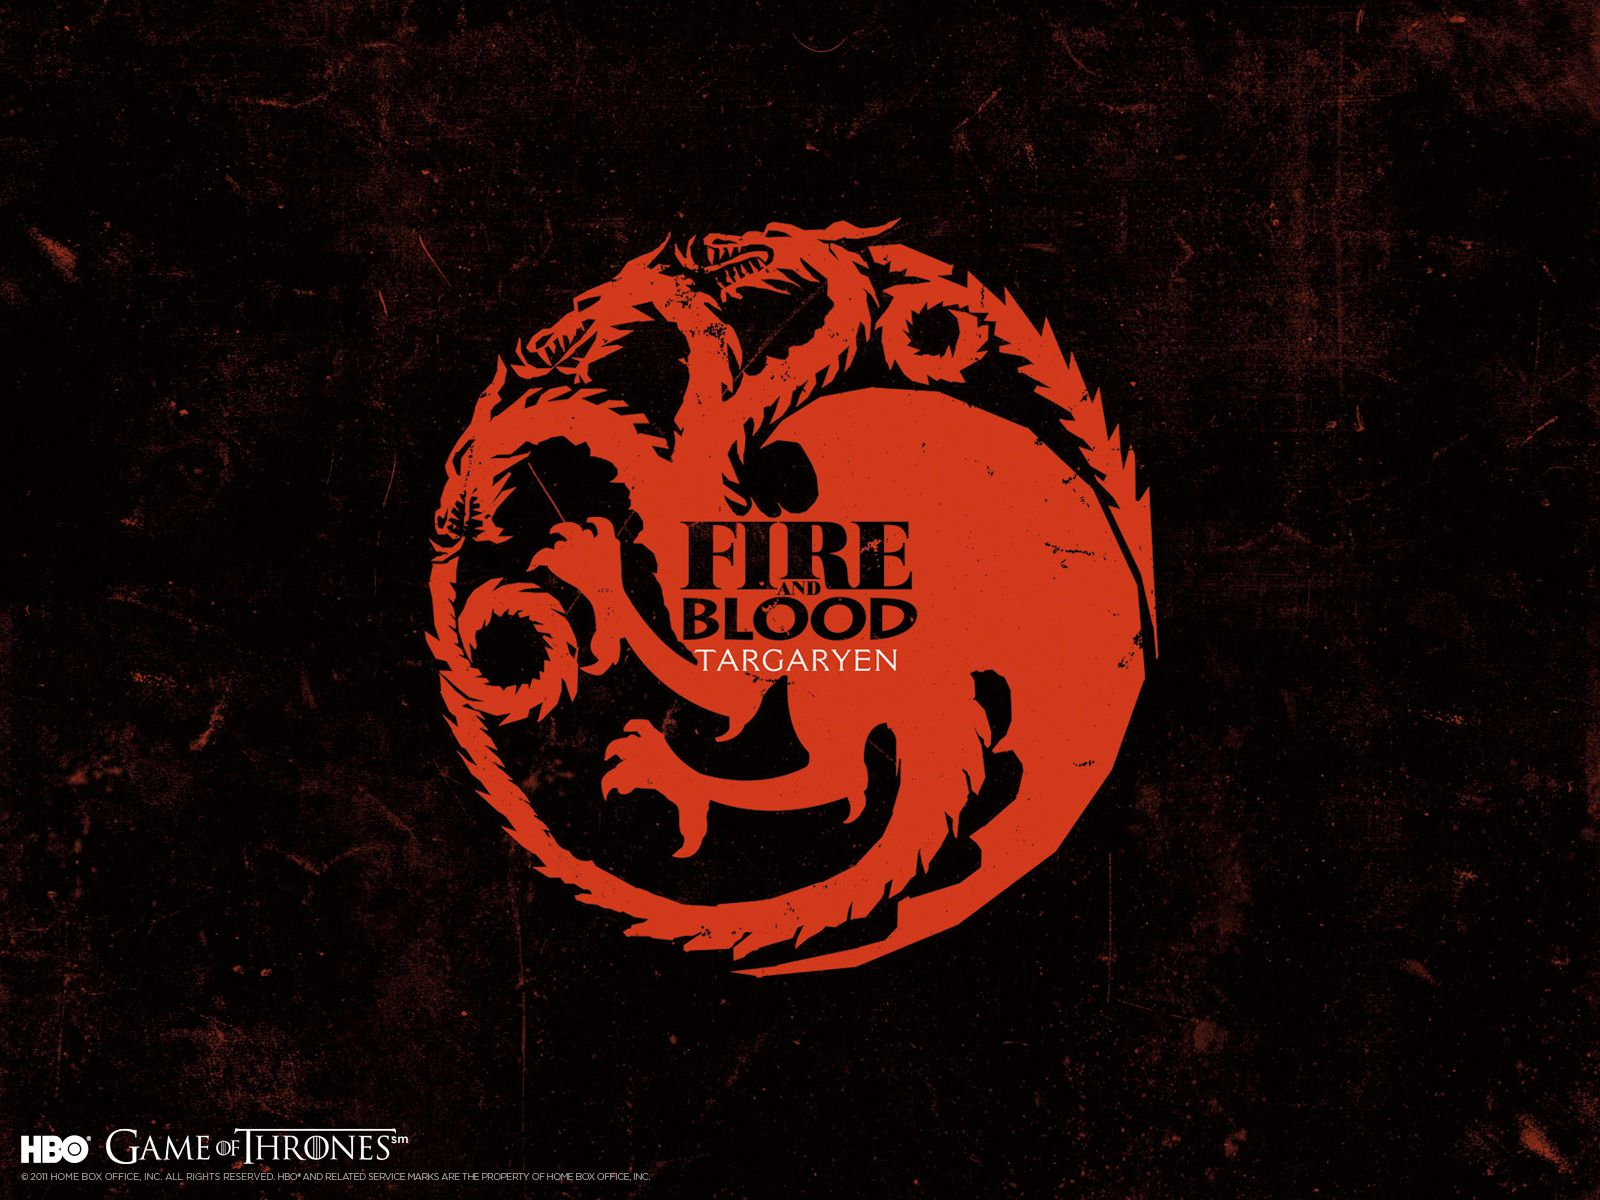 Game of Thrones Sigil Wallpapers game of thrones Game of 1600x1200